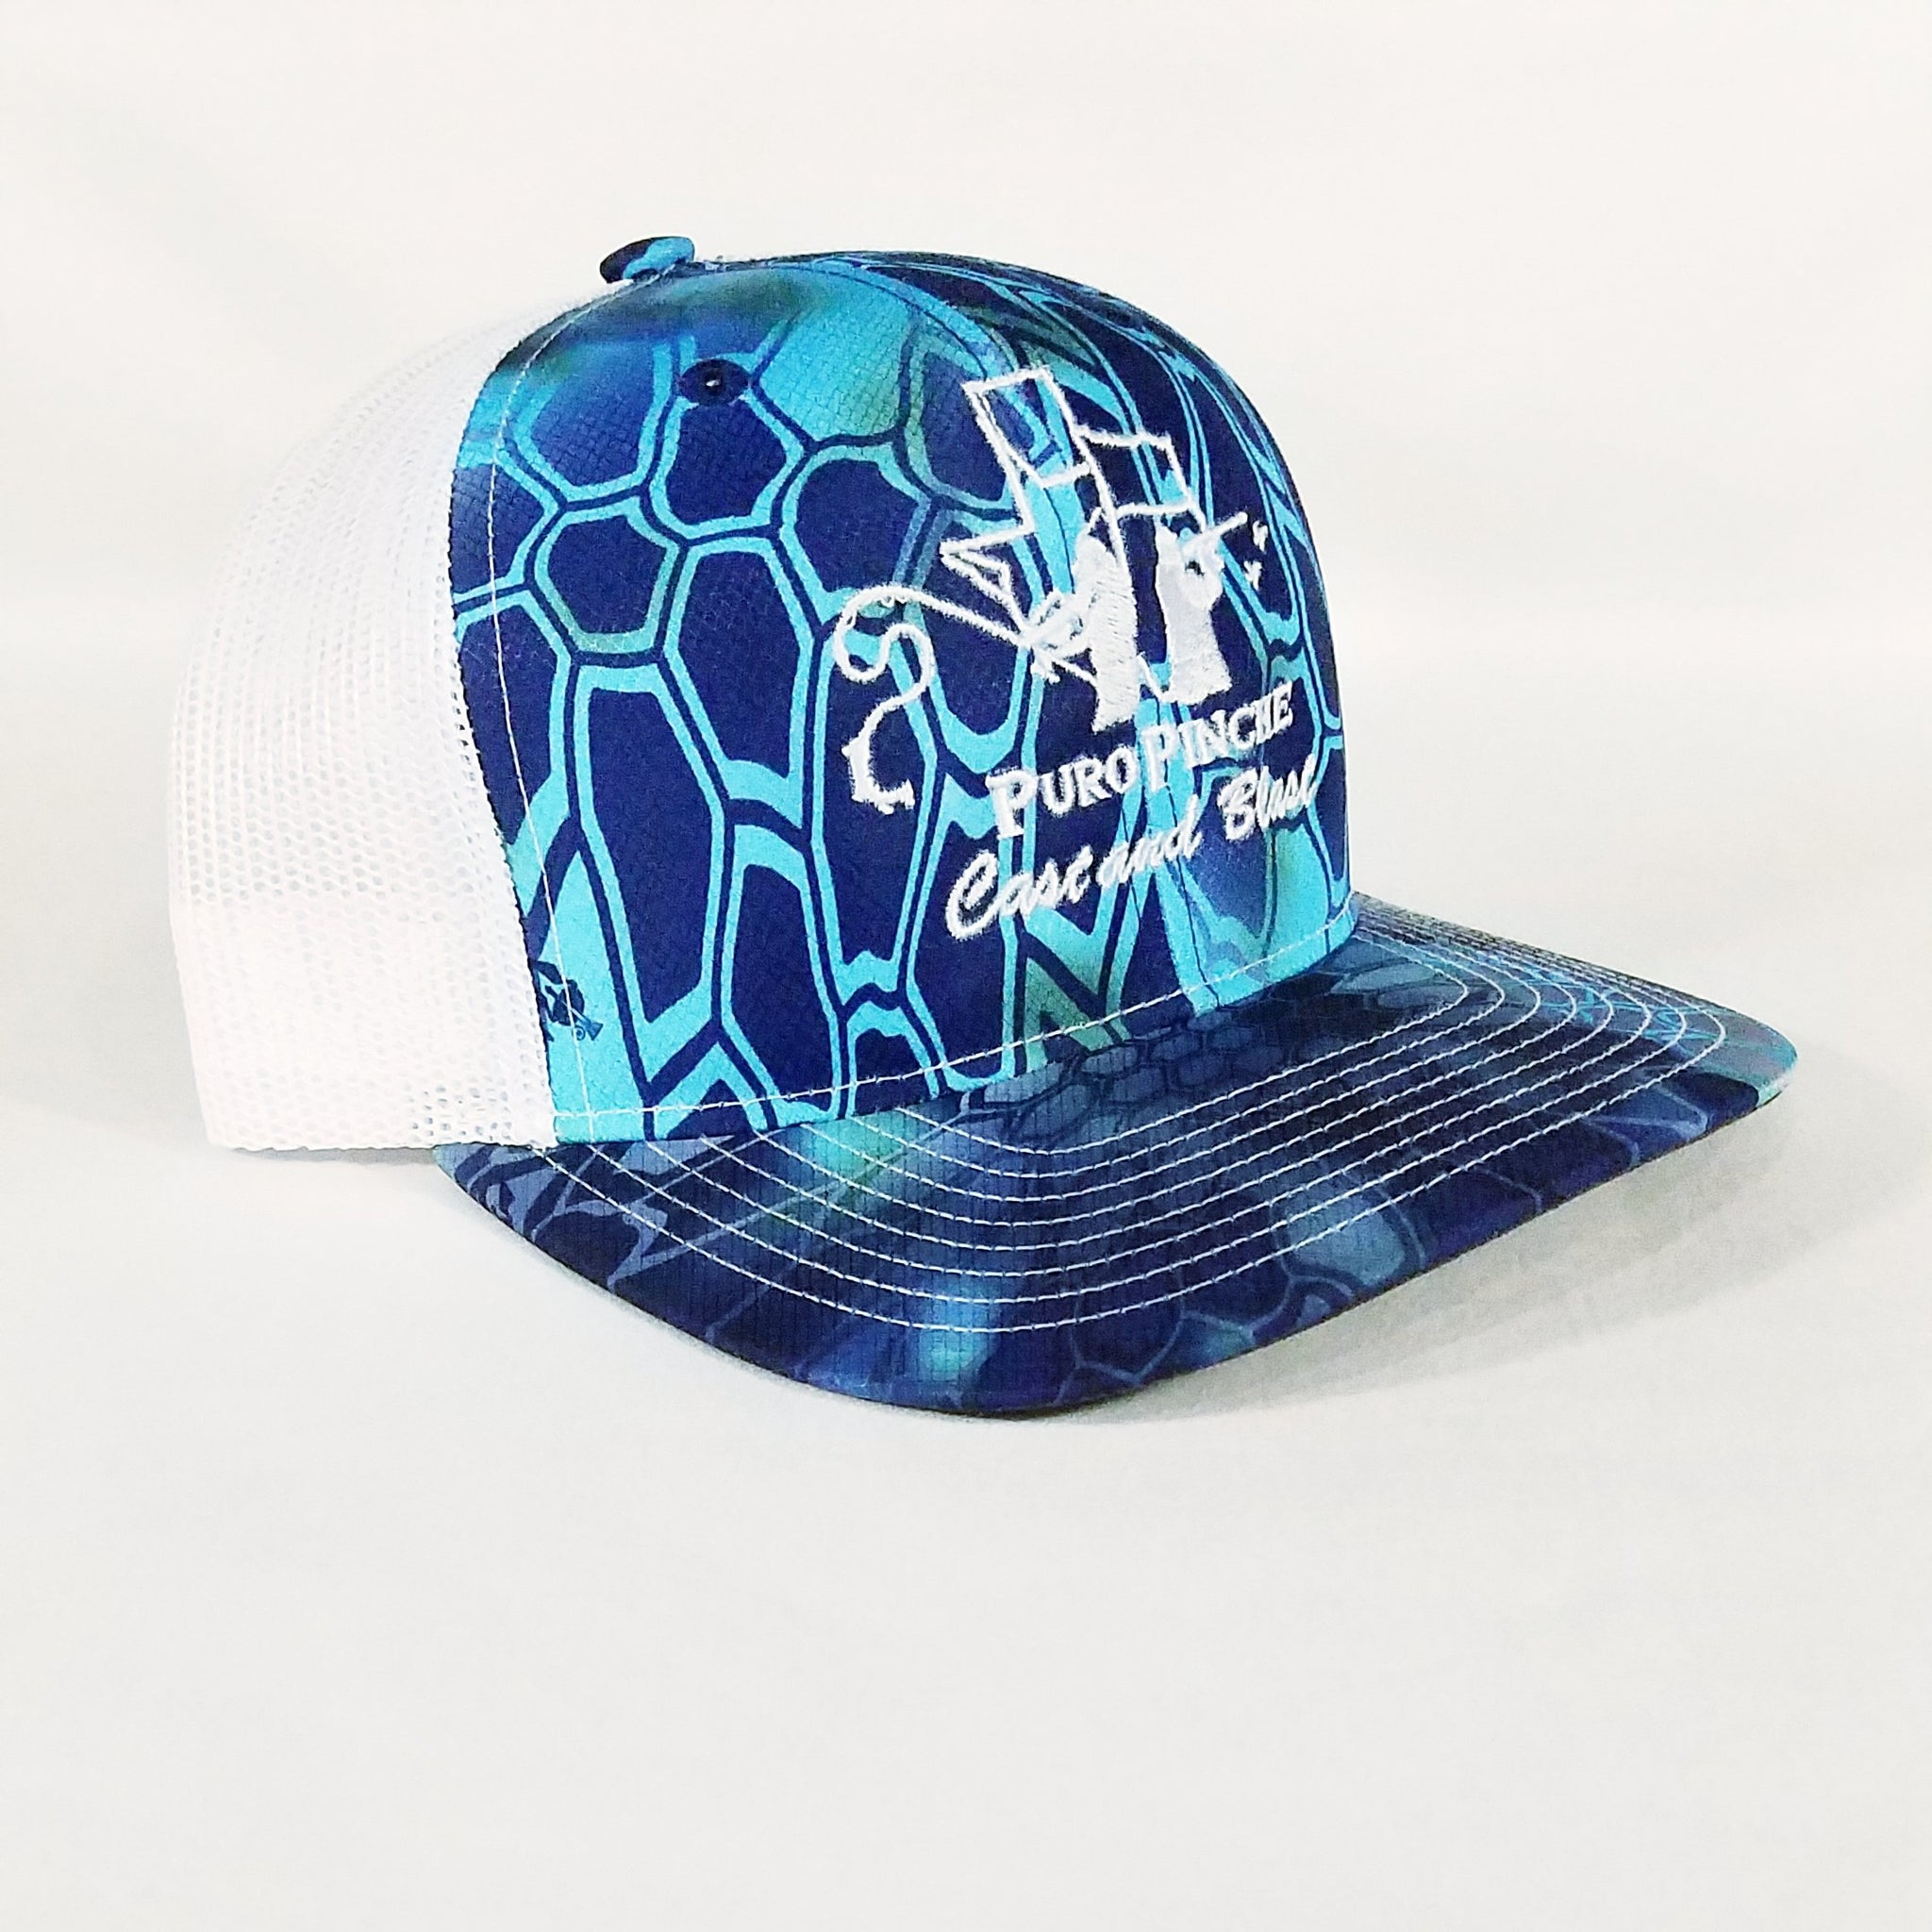 Aquatic Kryptec Camo/White Mesh Snap Back - PuroPincheCast&Blast Outfitters